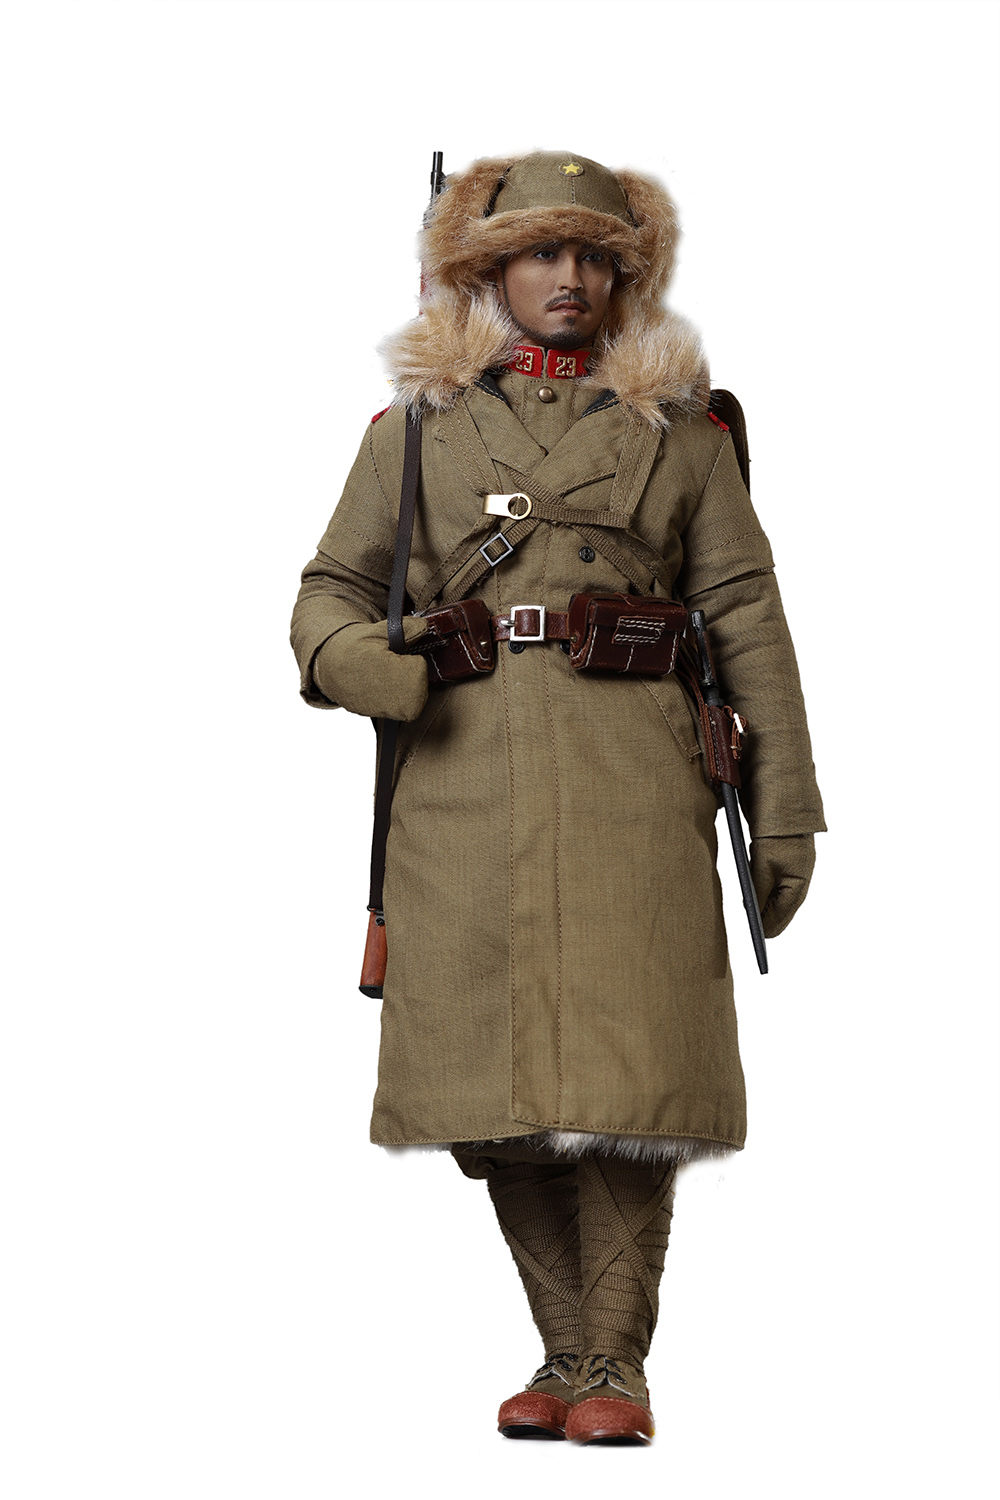 japanese - NEW PRODUCT: IQO Model: 1/6 WWII Series 1938 Hailar Scout (NO.91002A, B) 22051810